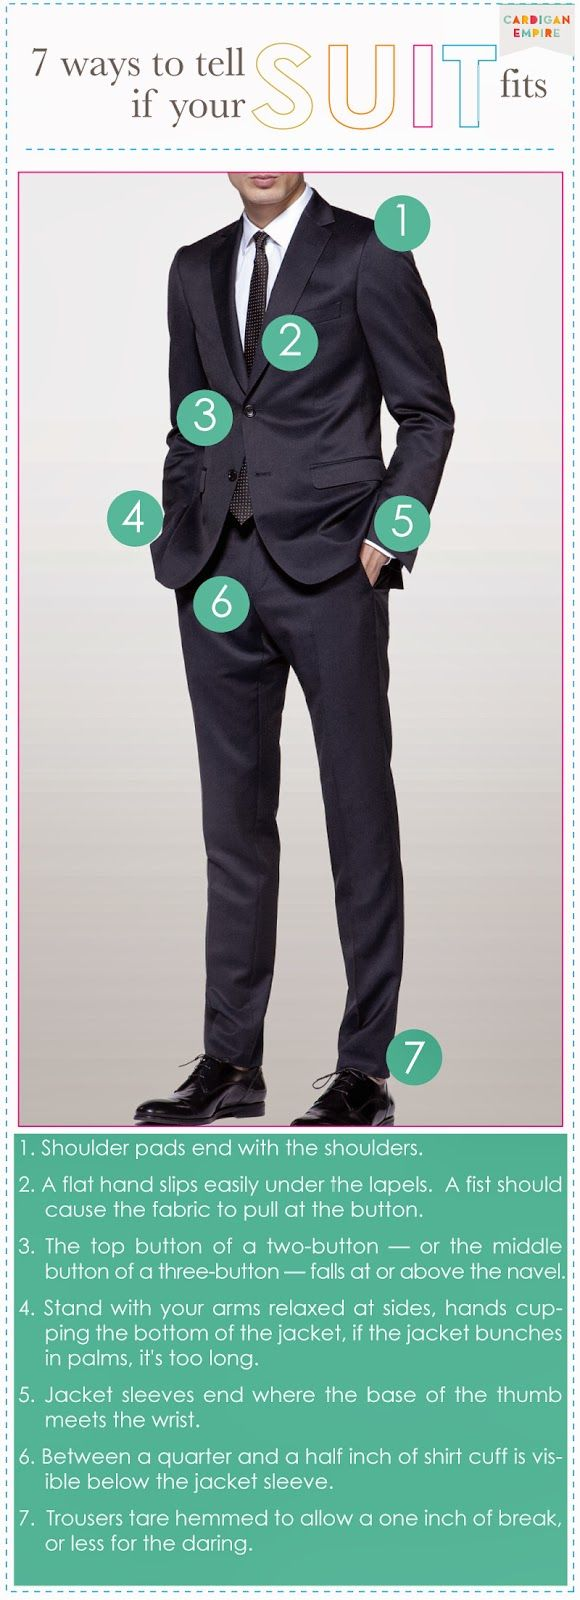 Mens Fashion: How to Pick a Suit & Tie